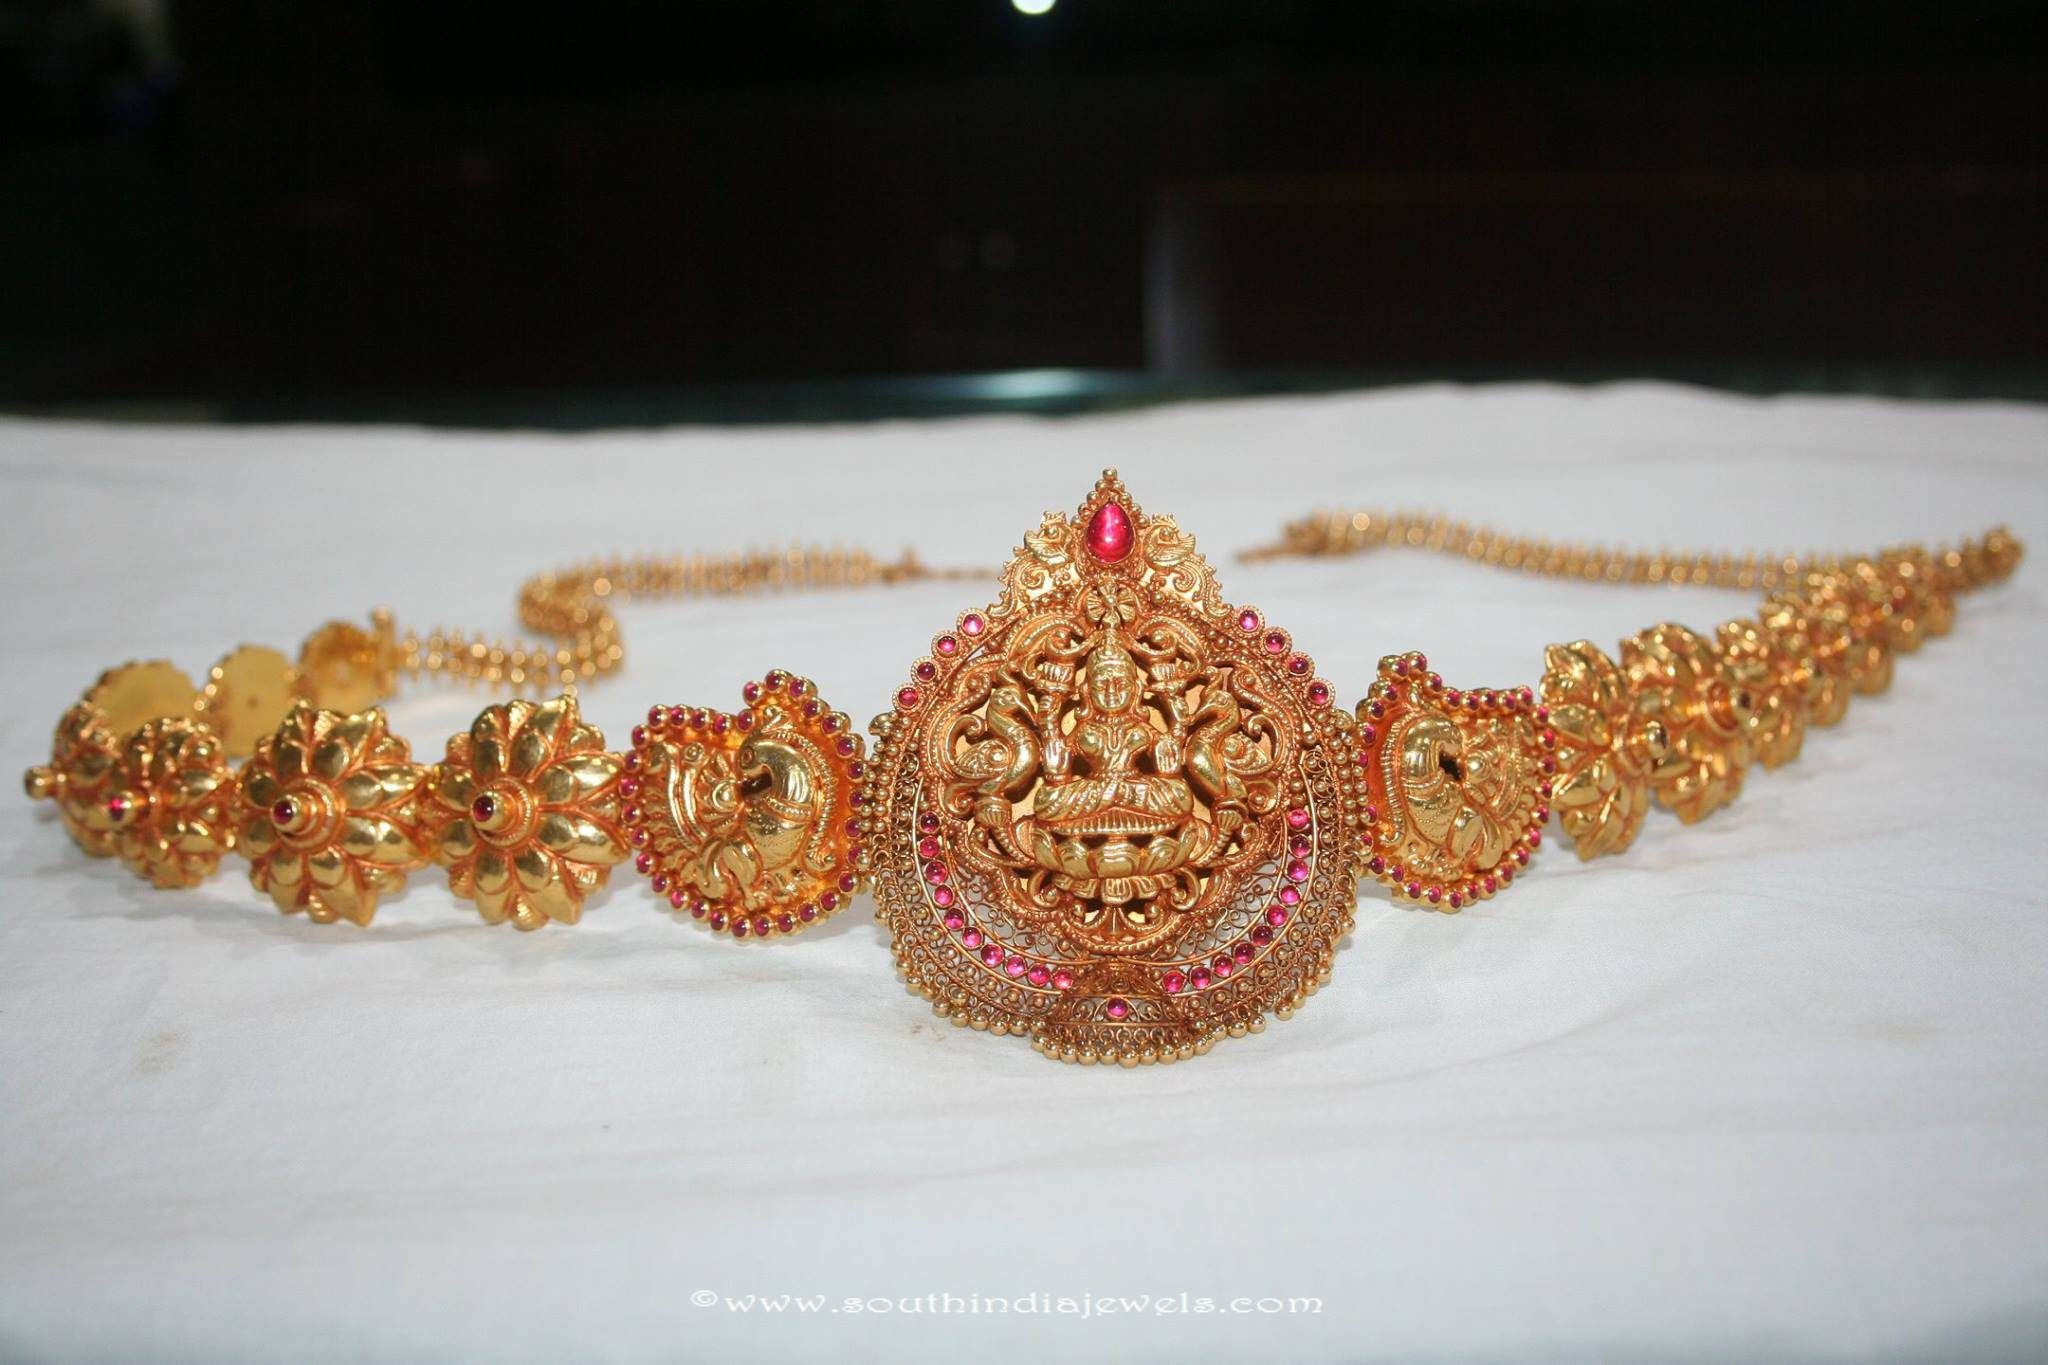 Gold vaddanam oddiyanam kammarpatta waisbelt designs south indian - 22k Gold 4 In 1 Lakshmi Vaddanam Vadanam Designs Pinterest Gold Indian Gold Jewelry And Gold Jewellery